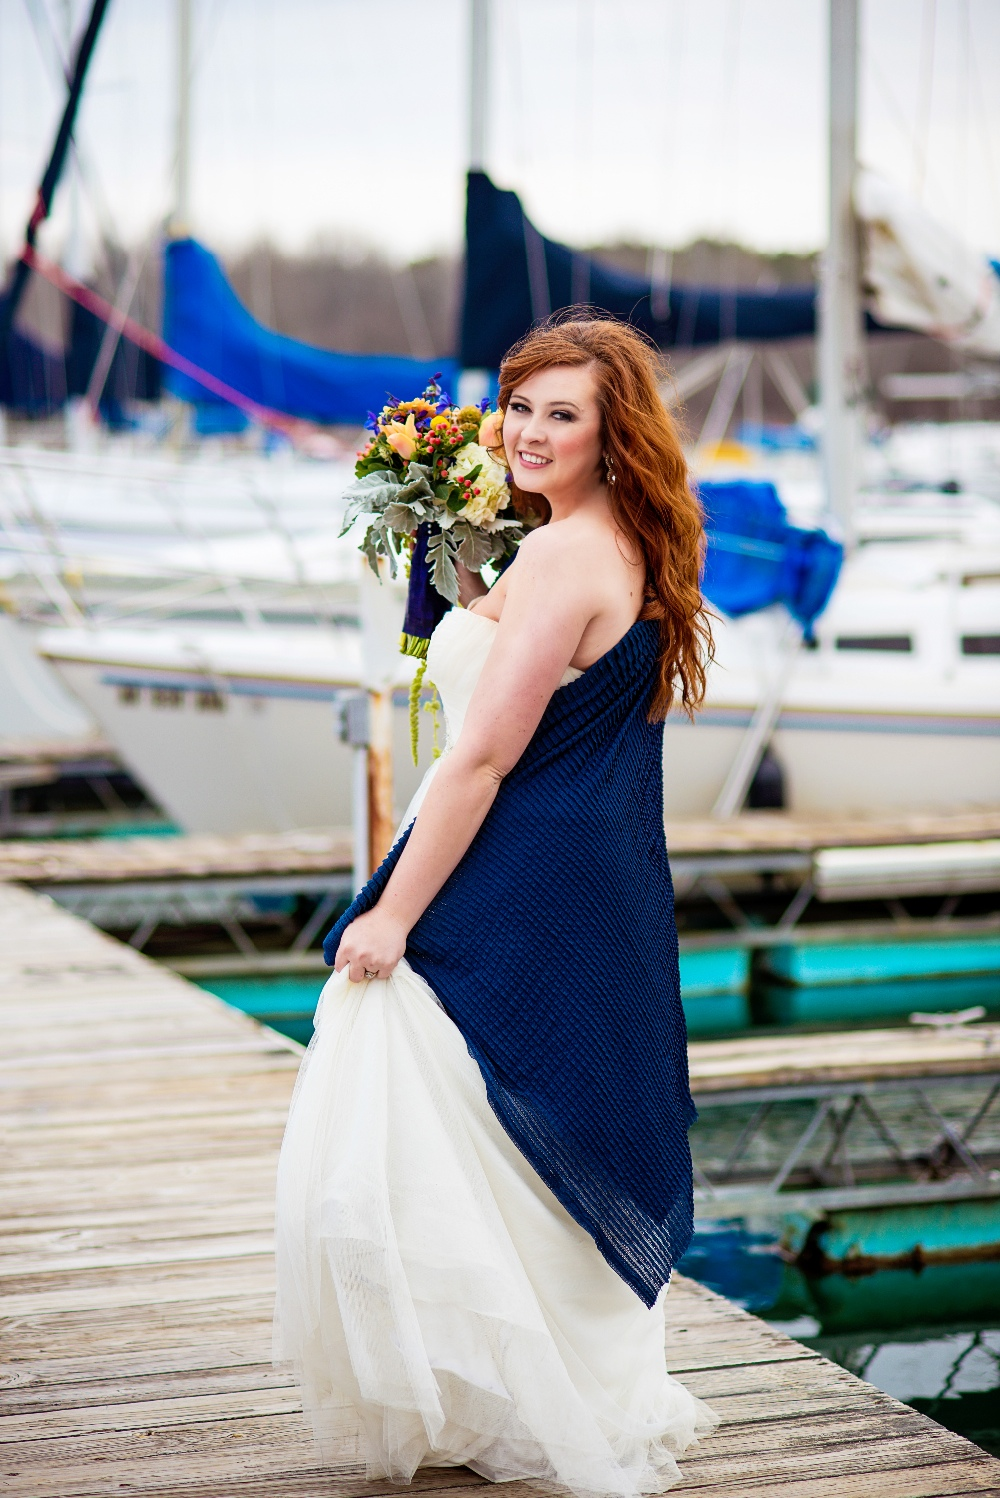 Nautical Styled Bridal Session by Zoë Weddings